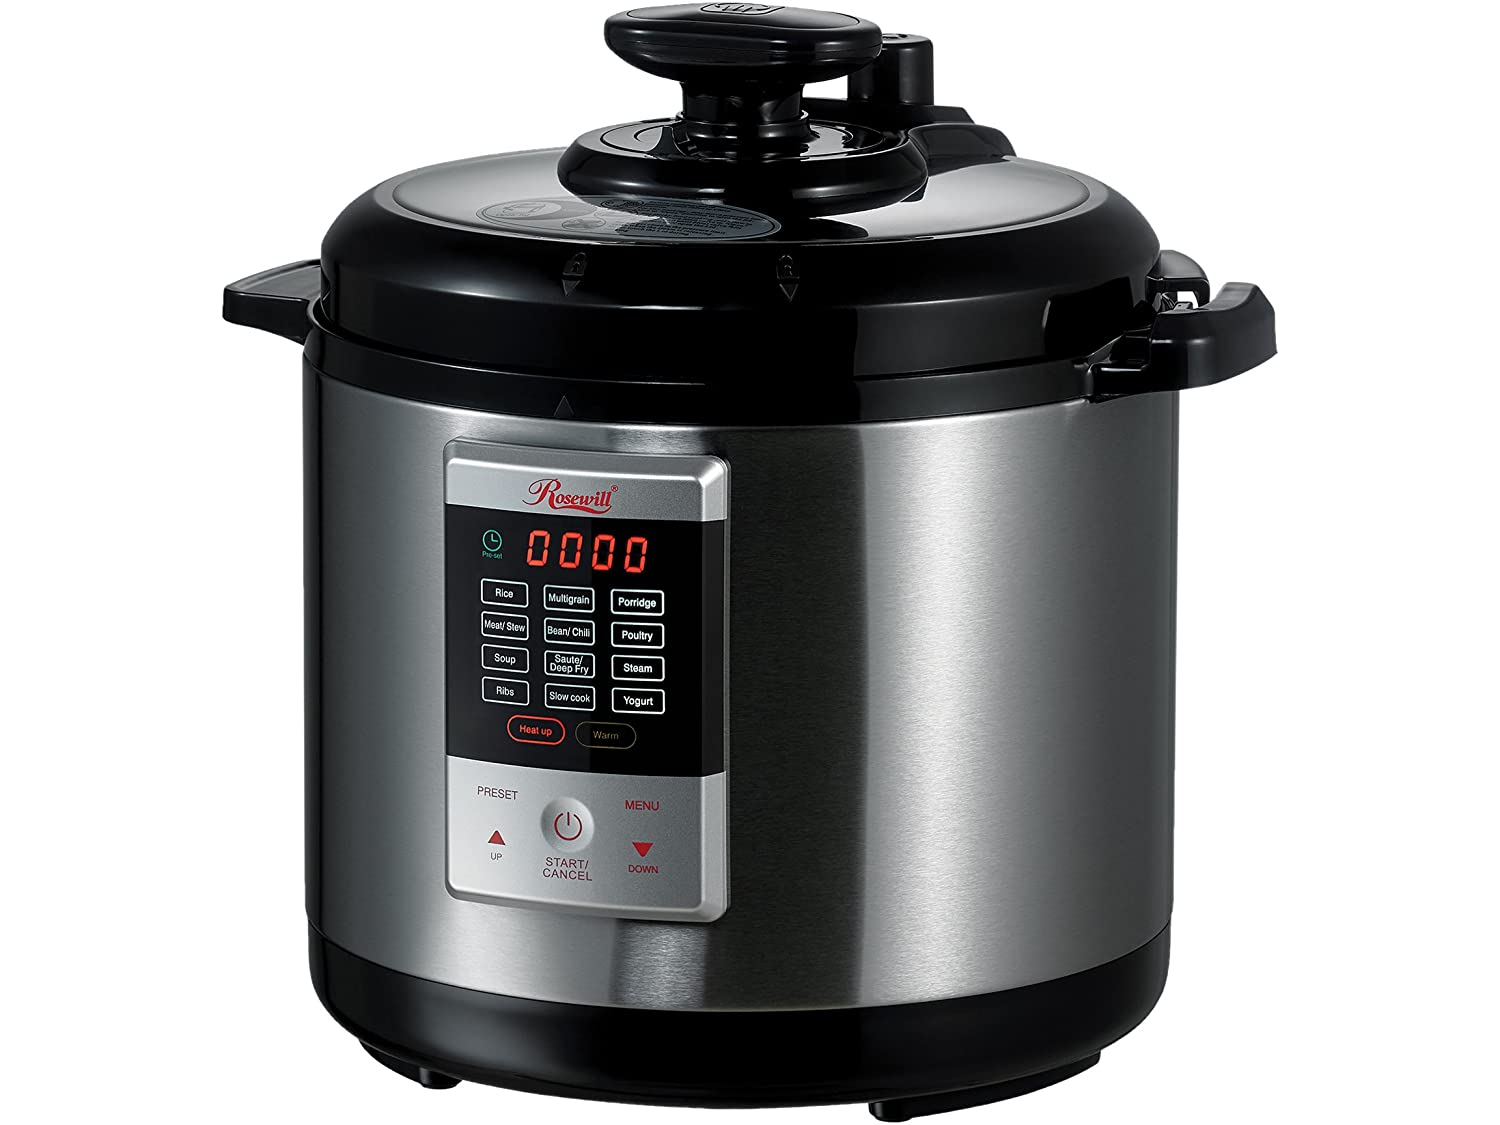 Rosewill Programmable Pressure Cooker 6Qt, 8-in-1 Instapot Multi Cooker: Rice Cooker, Slow Cooker Pressure Cooker, Vegetable Steamer, Deep Fryer, Sauté/Browning, Yogurt Maker, Warmer, HotPot